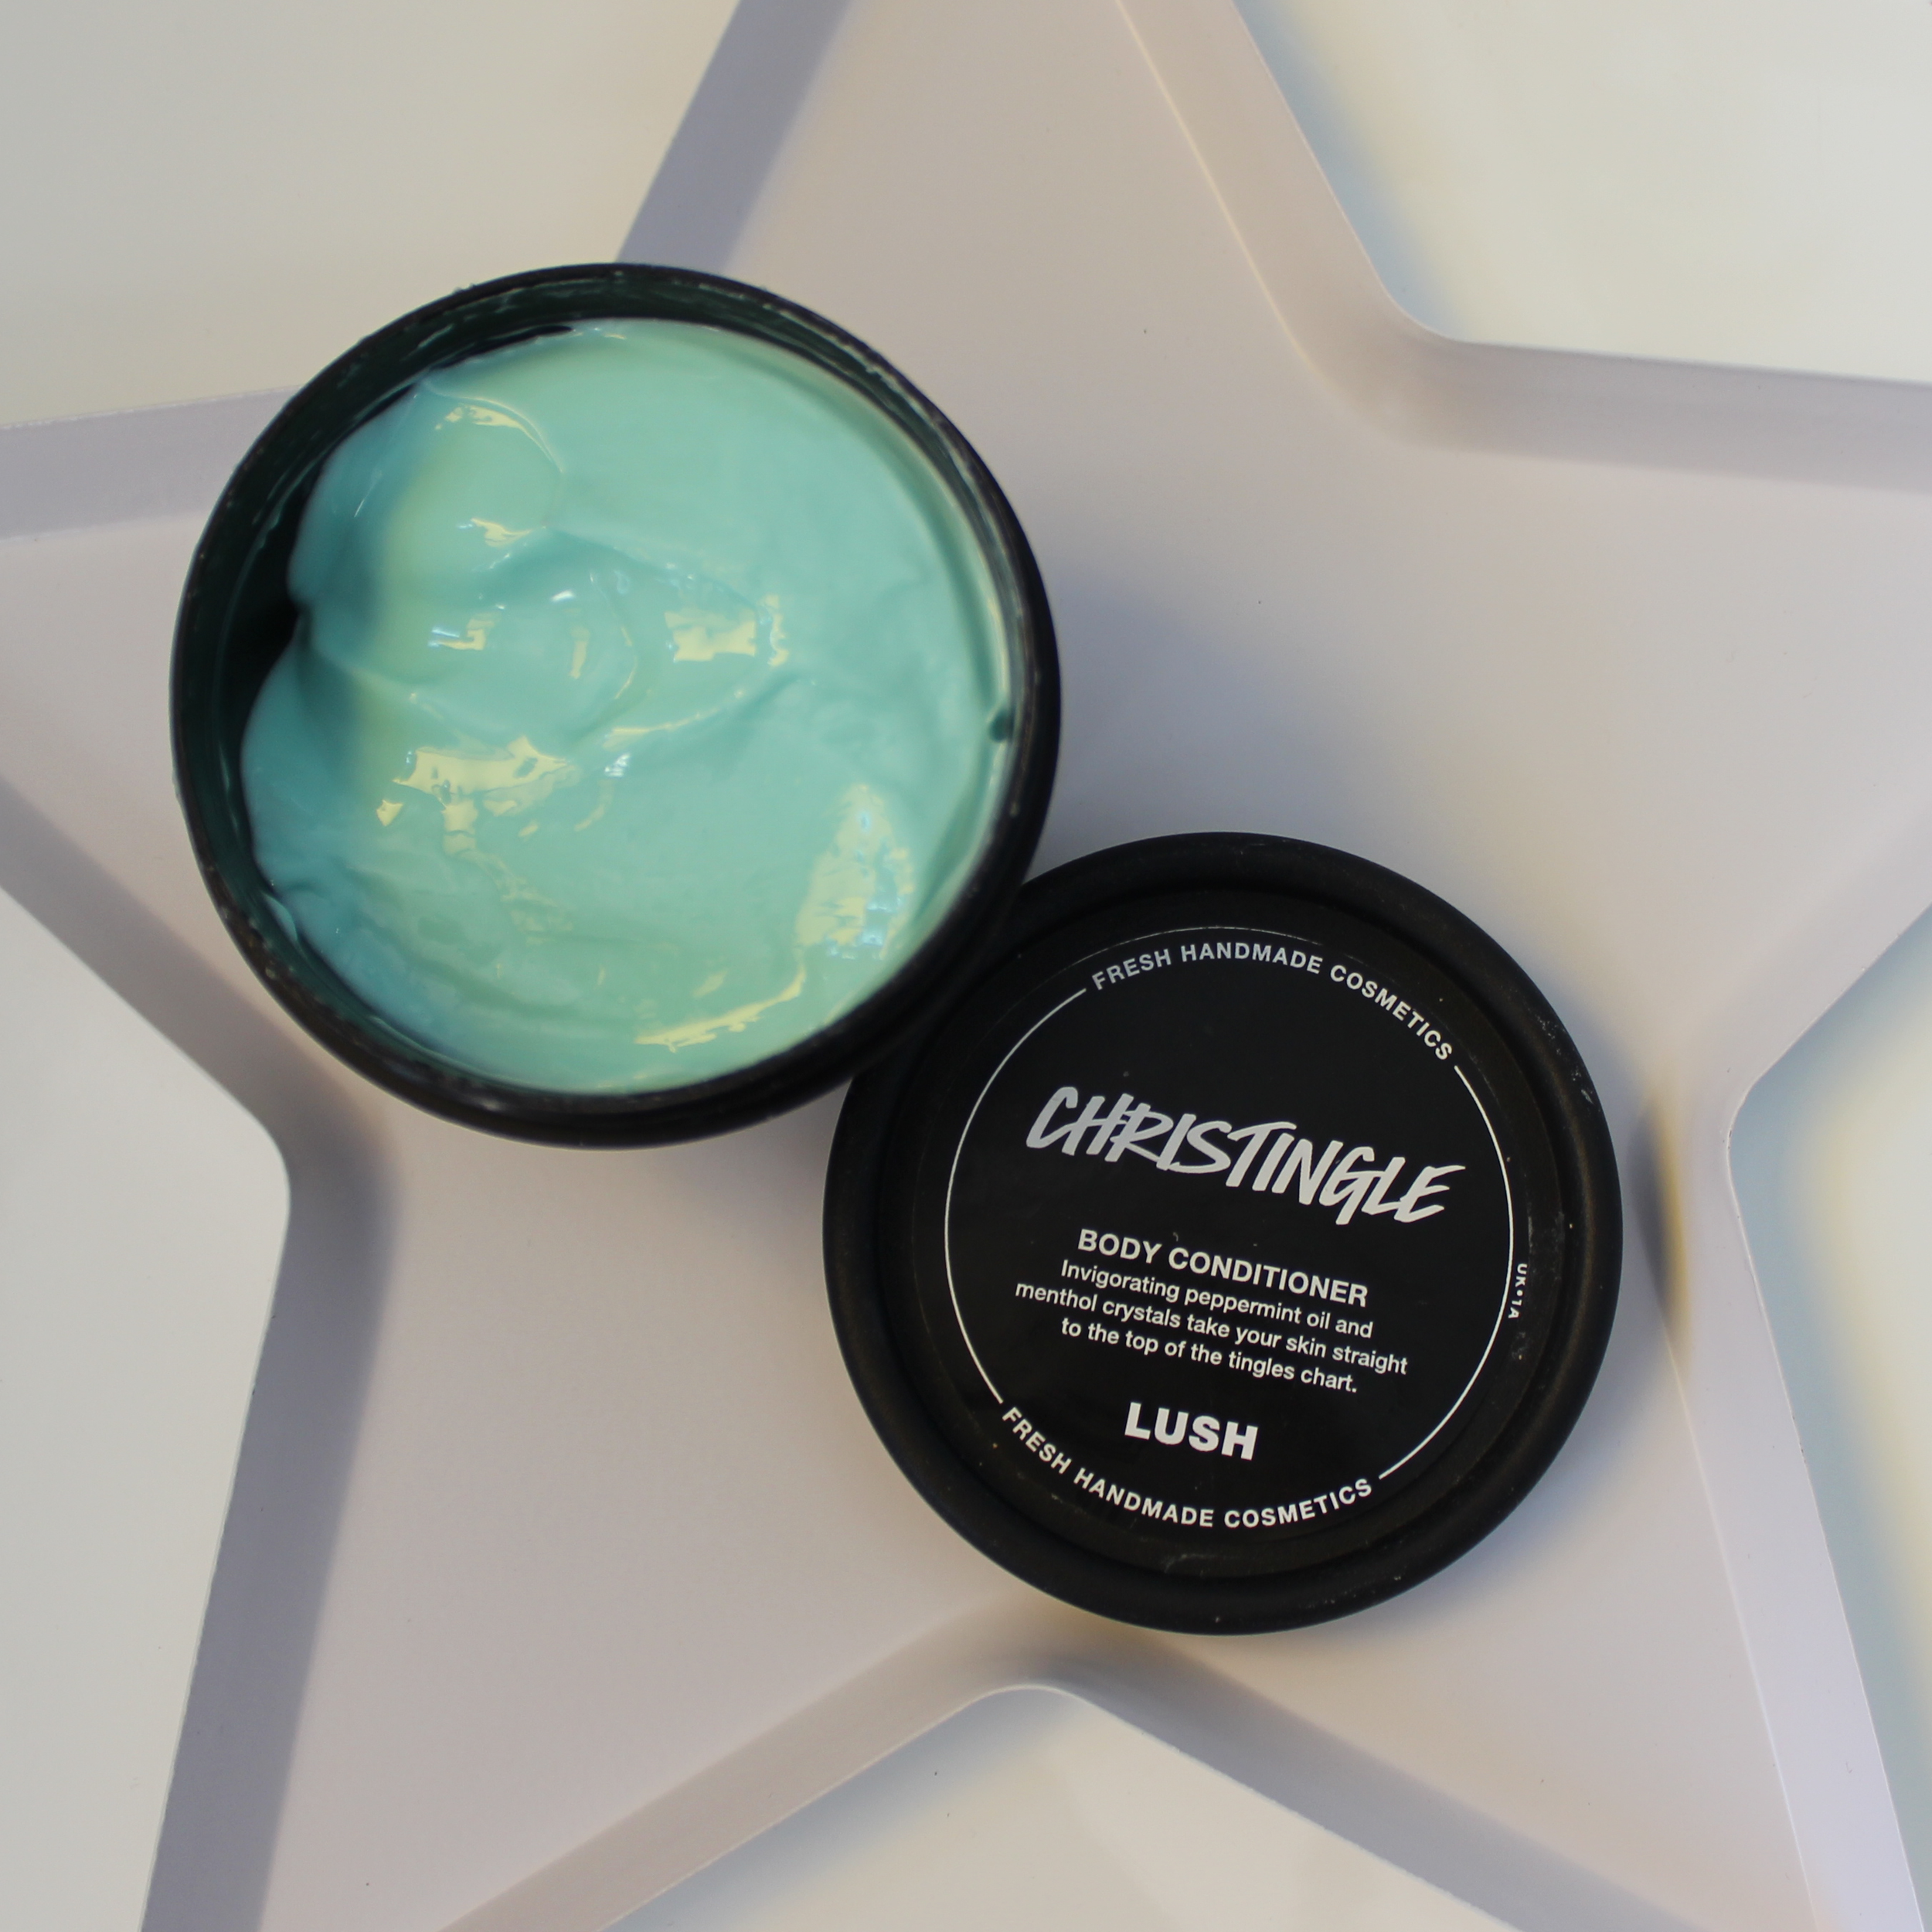 LUSH Christingle Body Conditioner | Emma Louisa